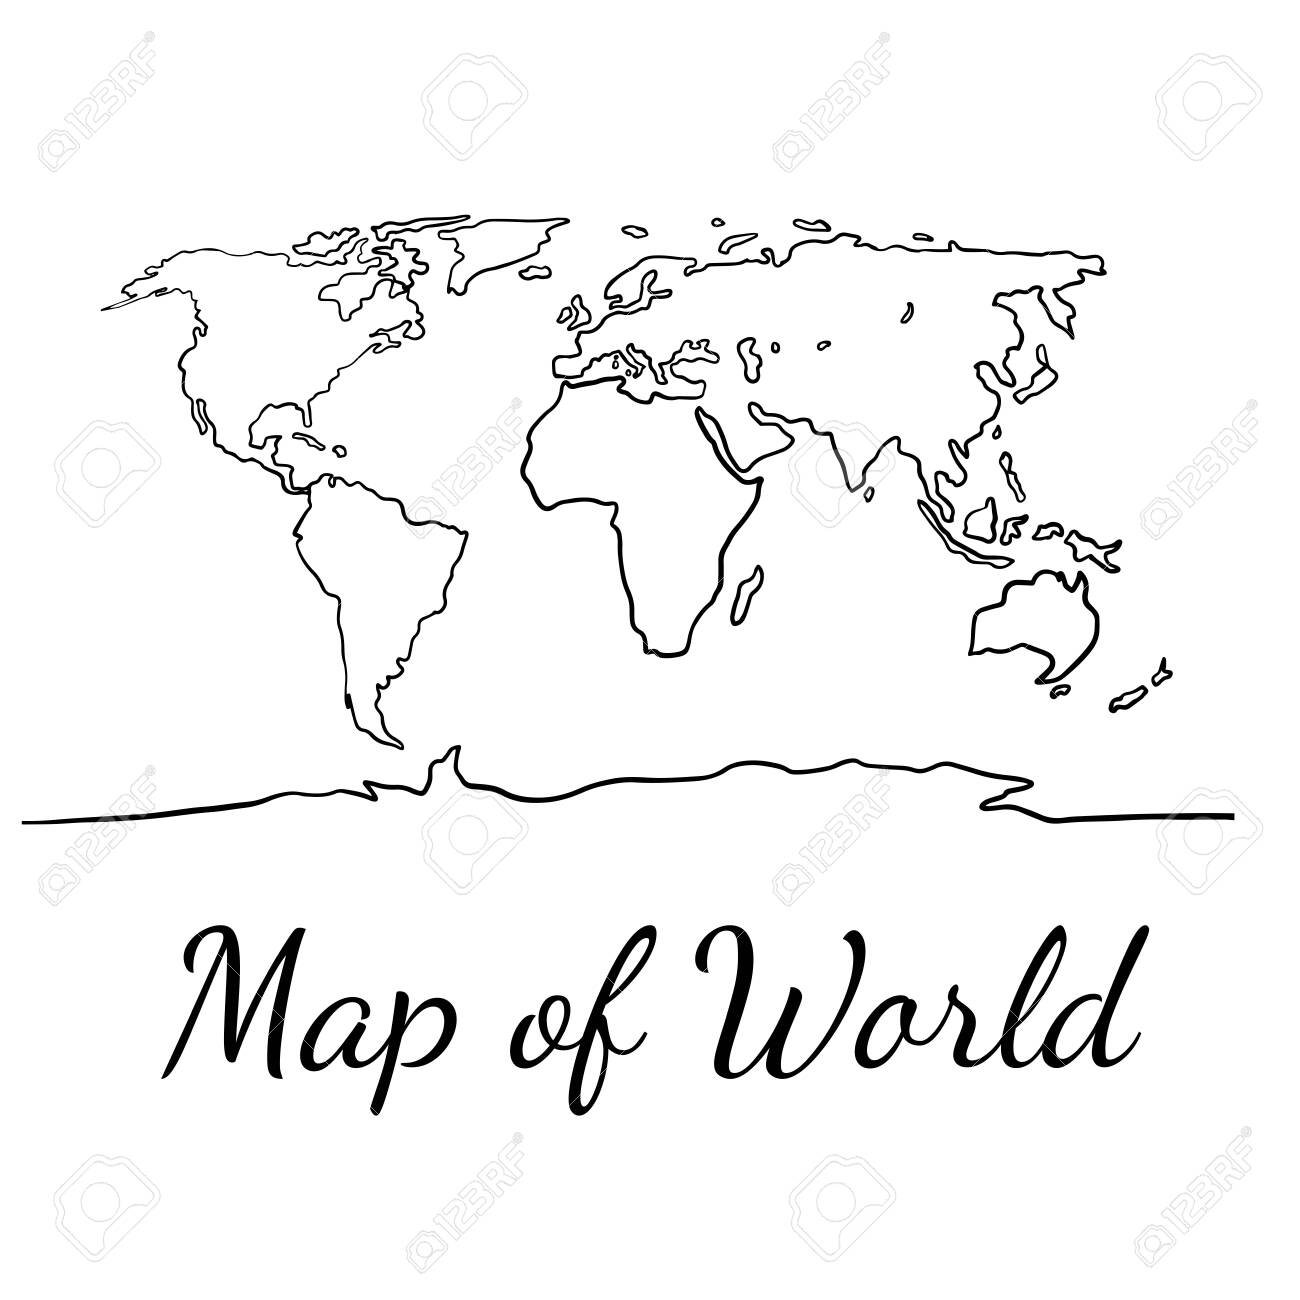 best popular world map outline graphic sketch style, background